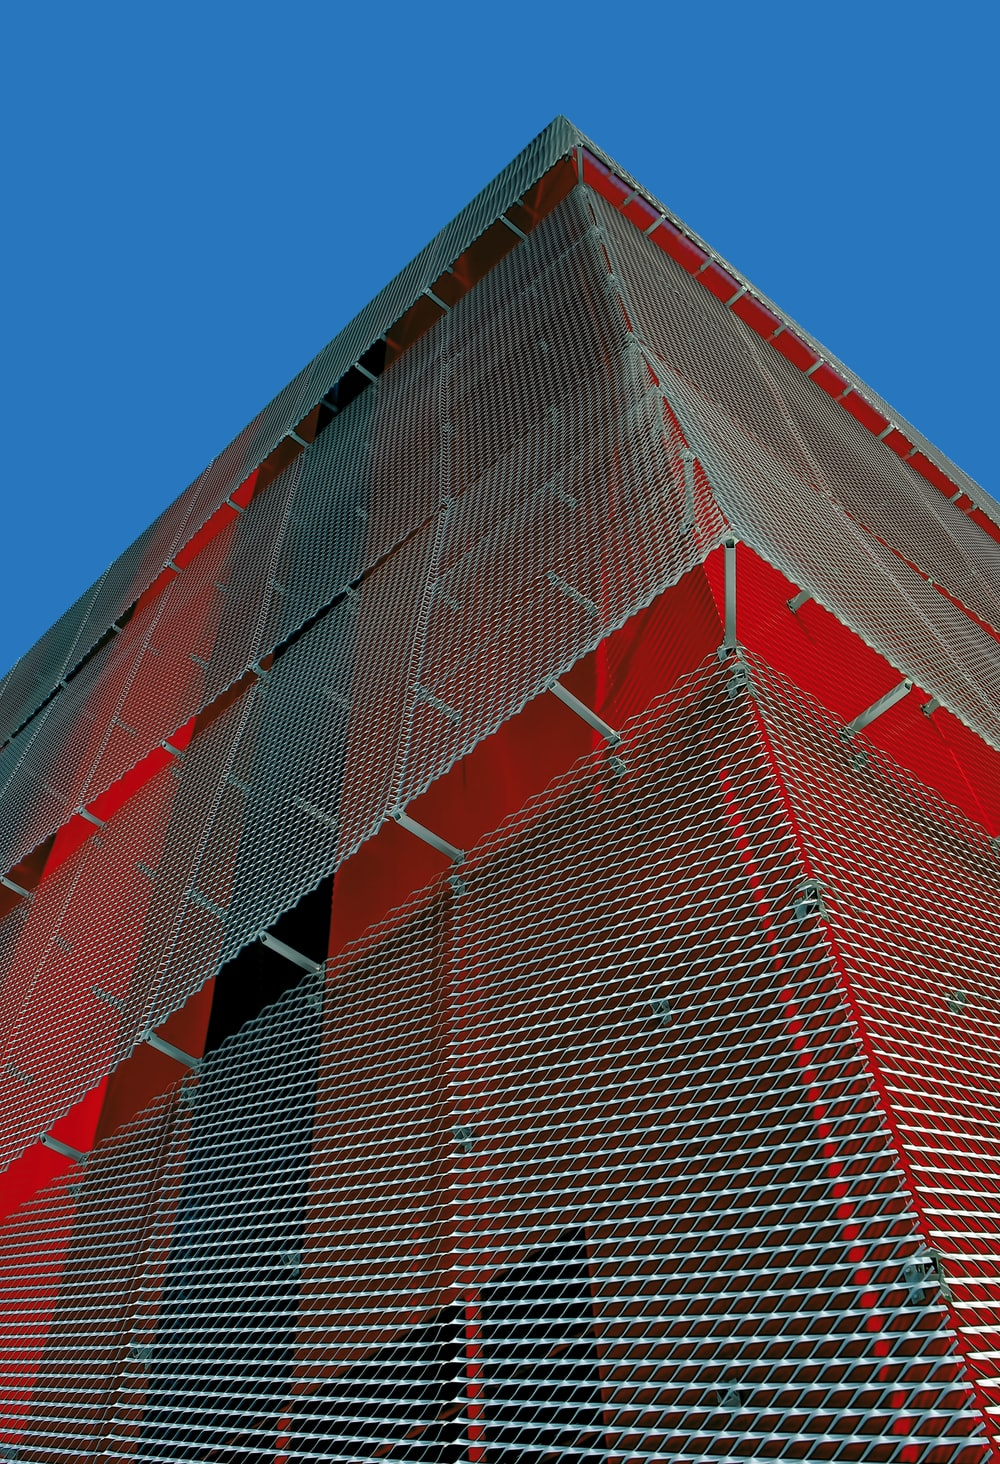 red and gray high-rise building under blue sky